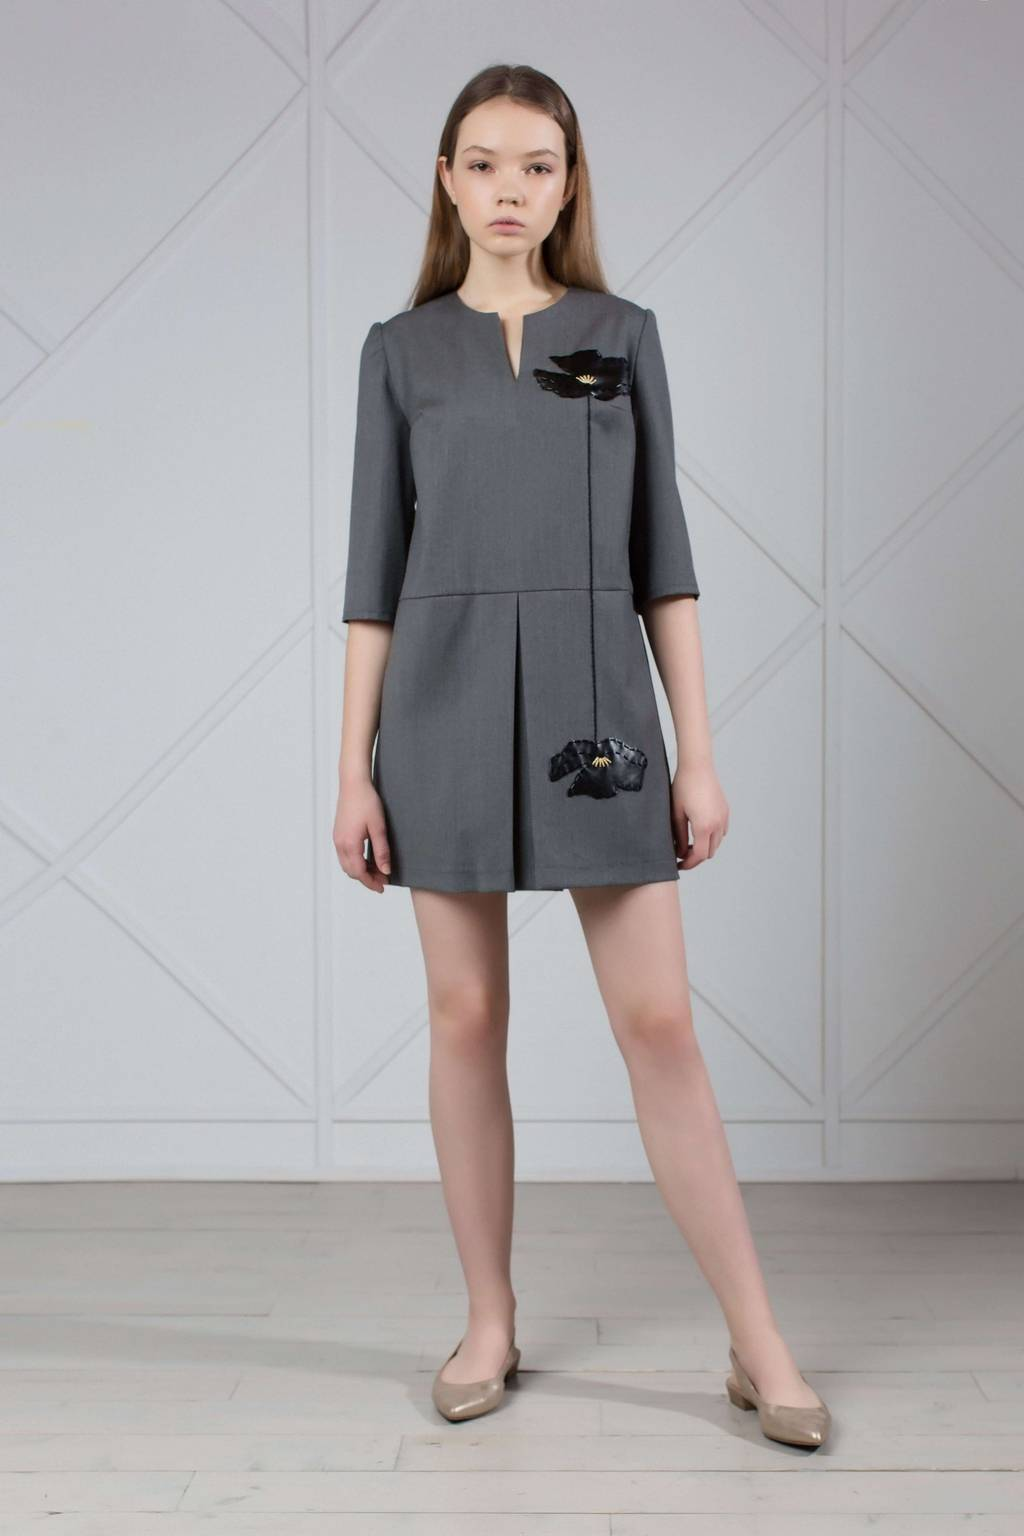 Wool mini dress with floral applique from eco-leather